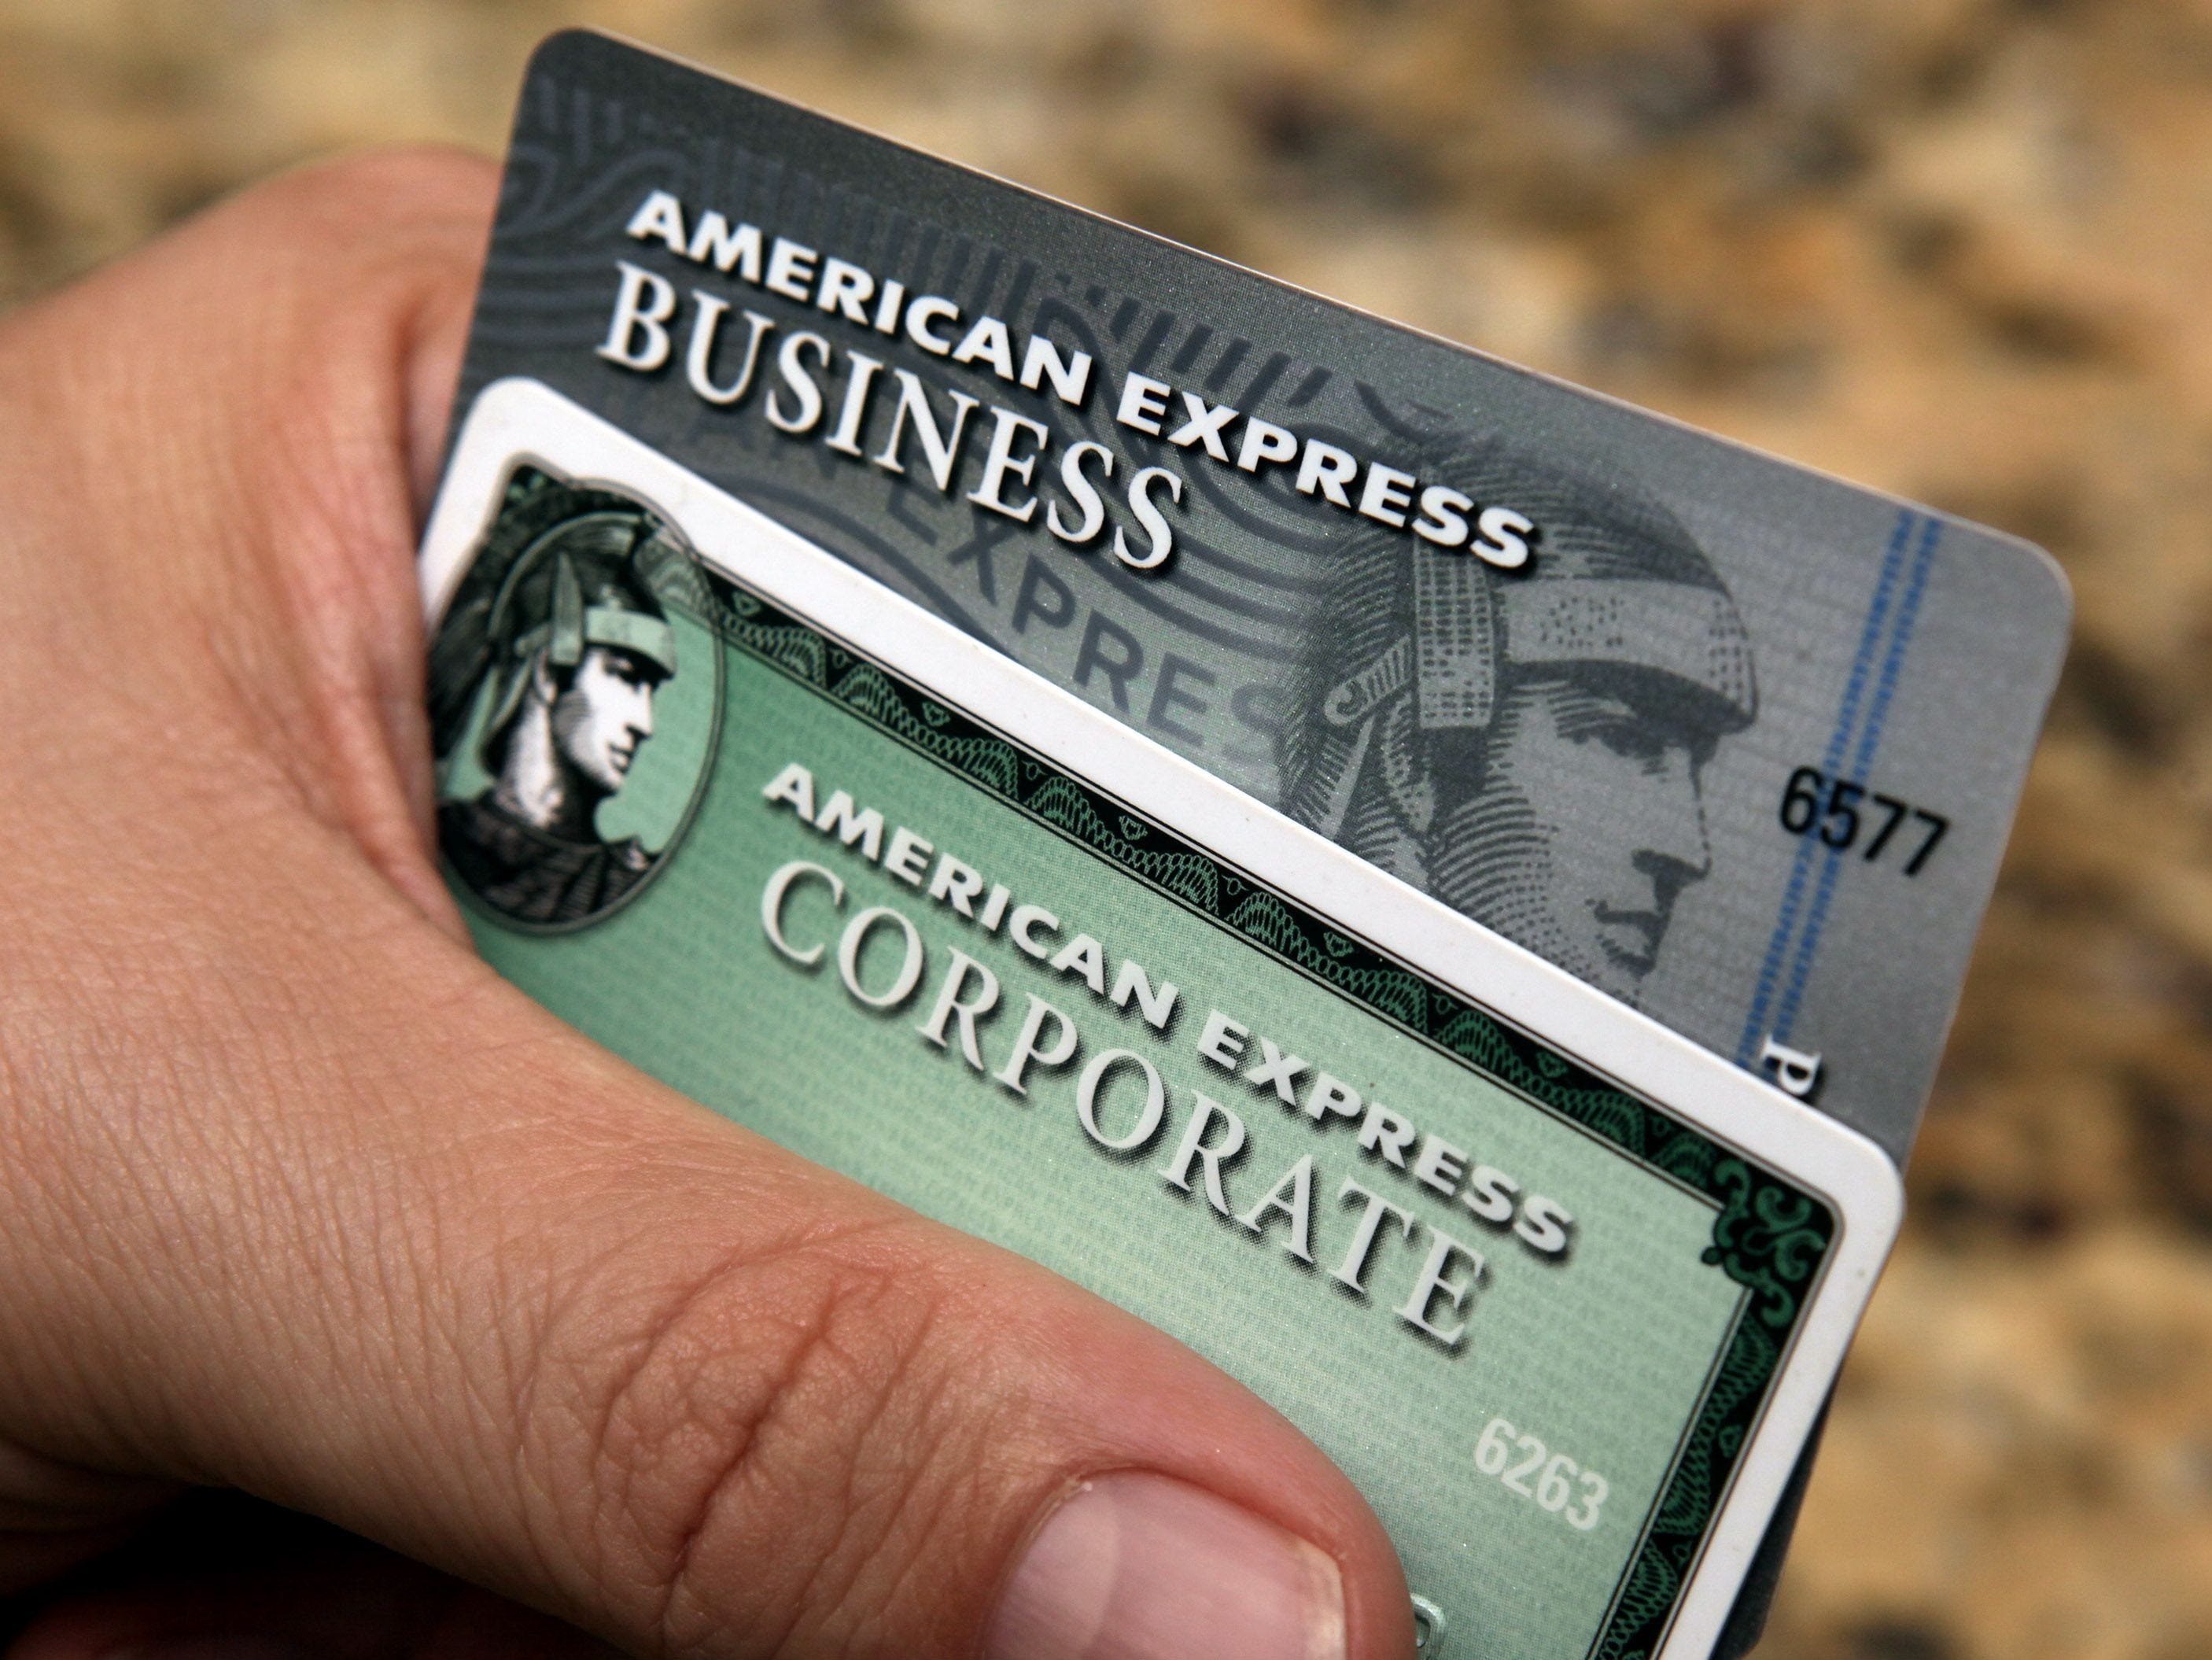 American Express Co.   Payment cards, financial services   2019 employees: 7,000e (estimated by Arizona Republic)   2018 employees: 7,000   Ownership: Public   Headquarters: New York   www.americanexpress.com